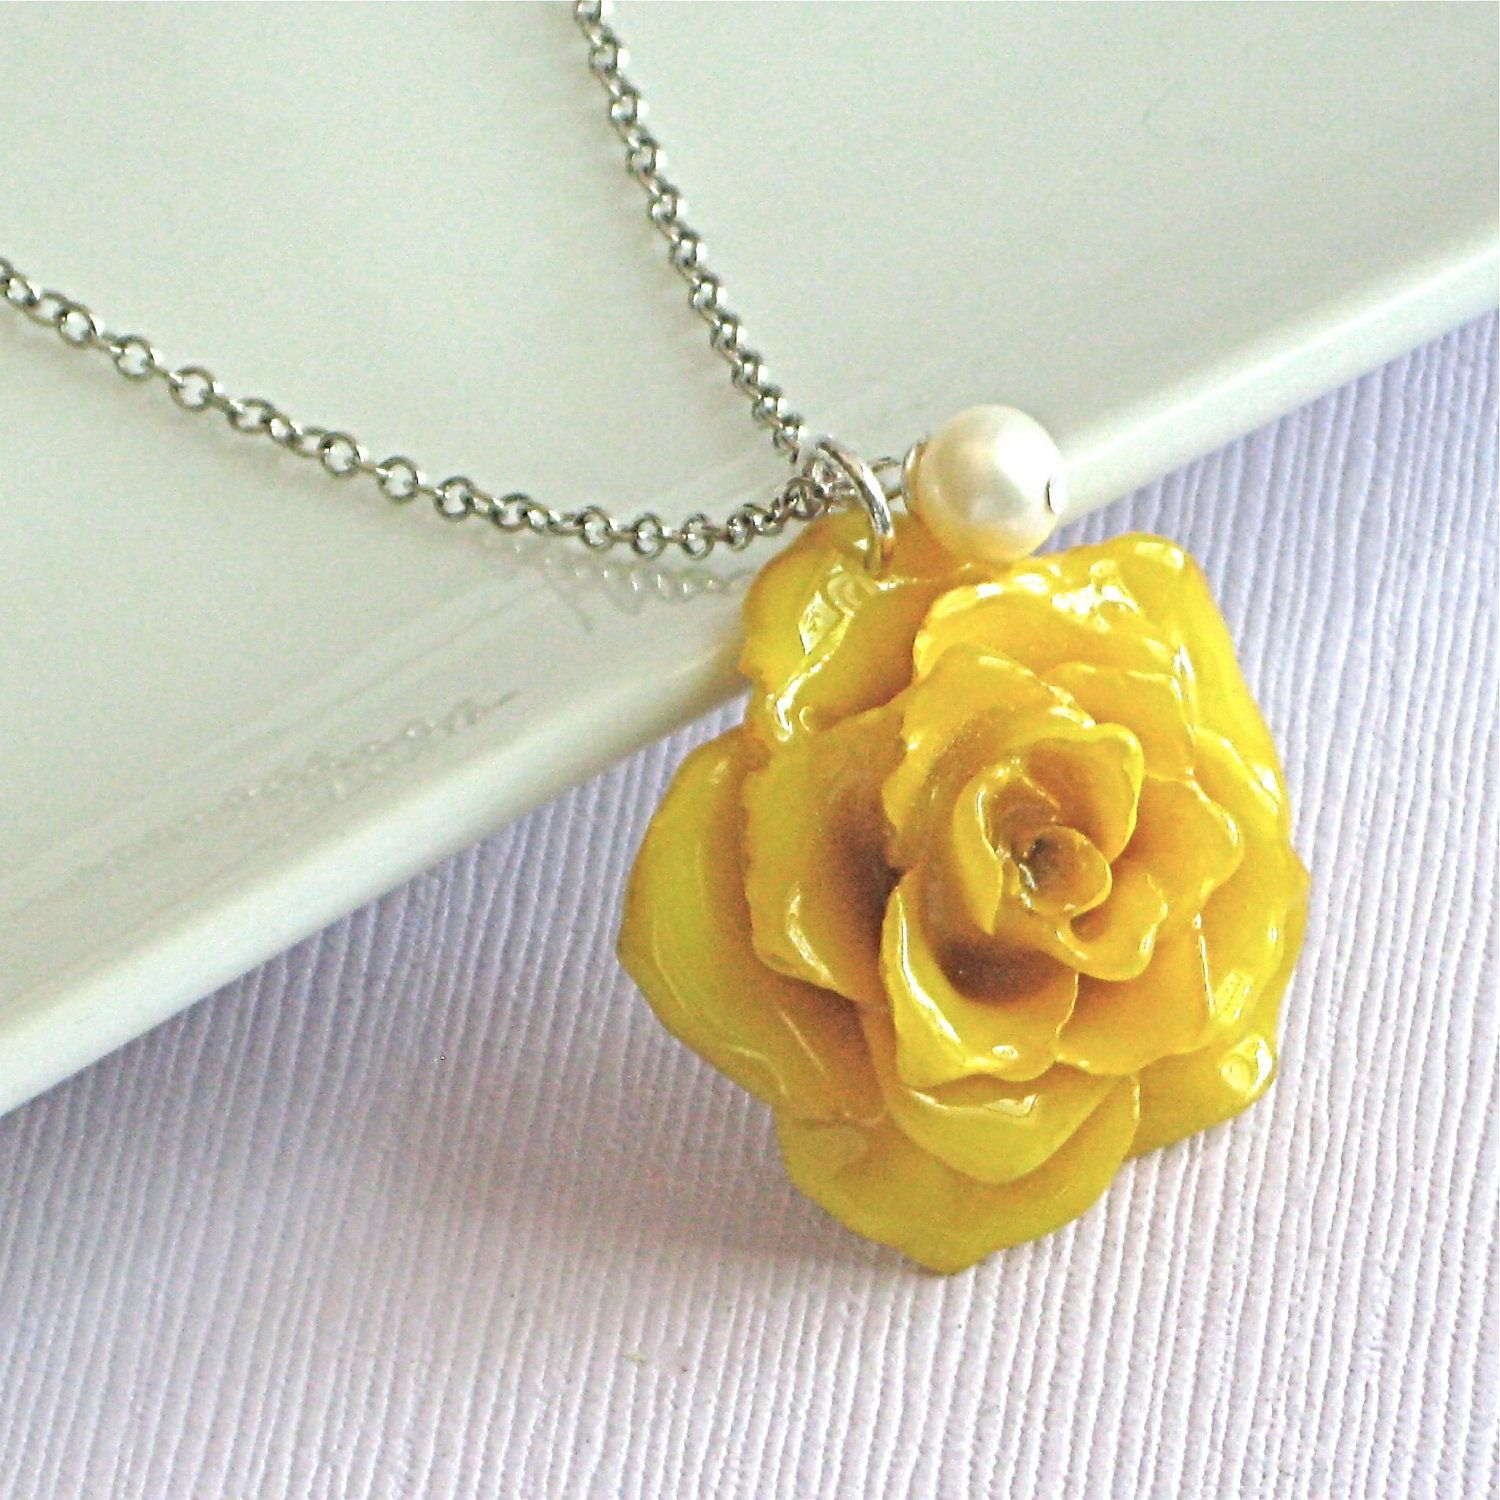 Real yellow rose necklace sterling silver natural preserved real yellow rose necklace sterling silver natural preserved flower jewelry nature jewelry nature necklace mightylinksfo Choice Image